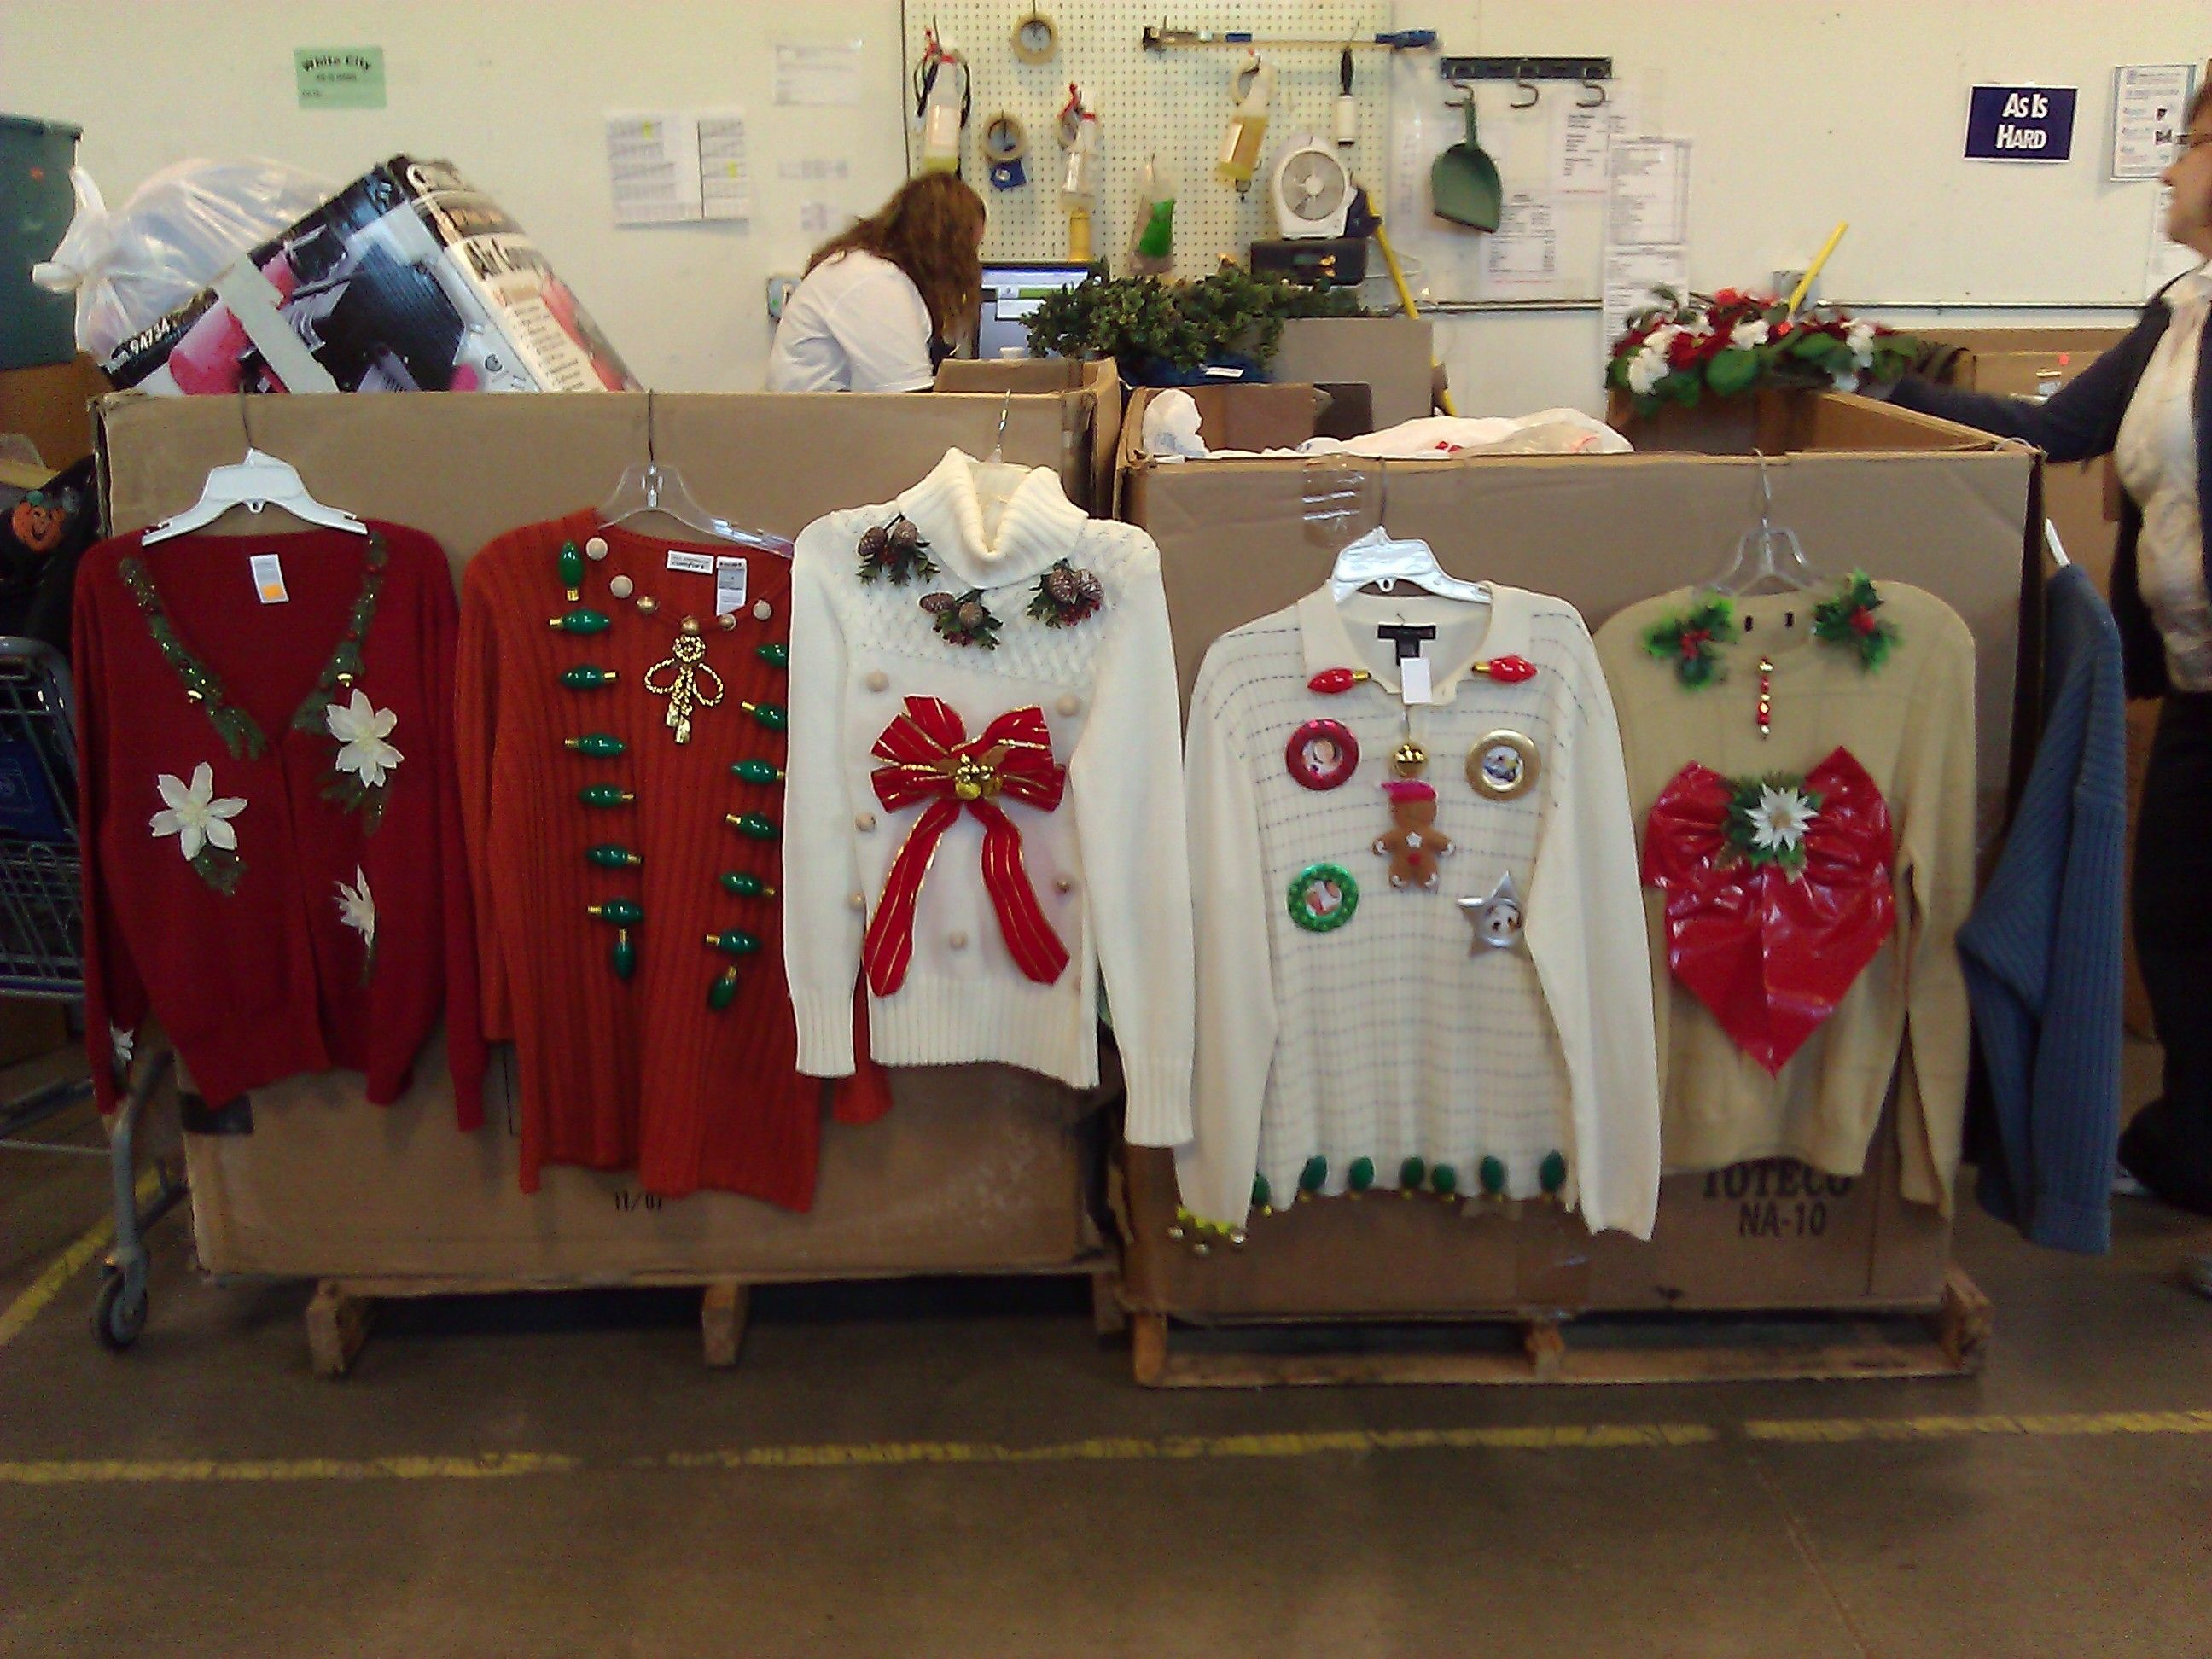 you can find ugly christmas sweaters at goodwill but act quickly